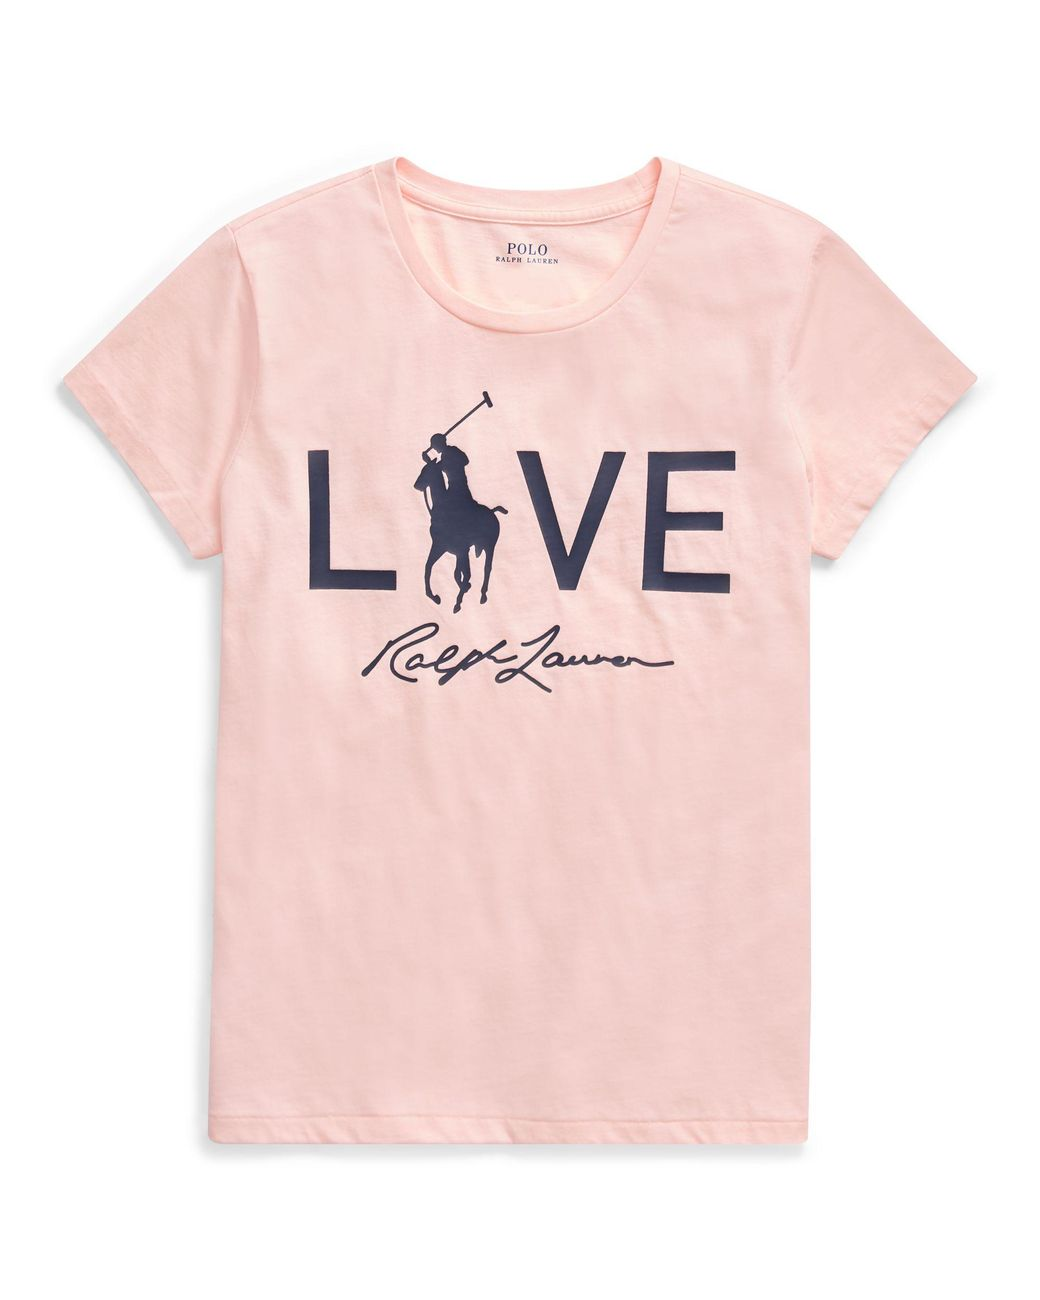 607461443b9c01 Polo Ralph Lauren Pink Pony Love Graphic T-shirt in Pink - Lyst